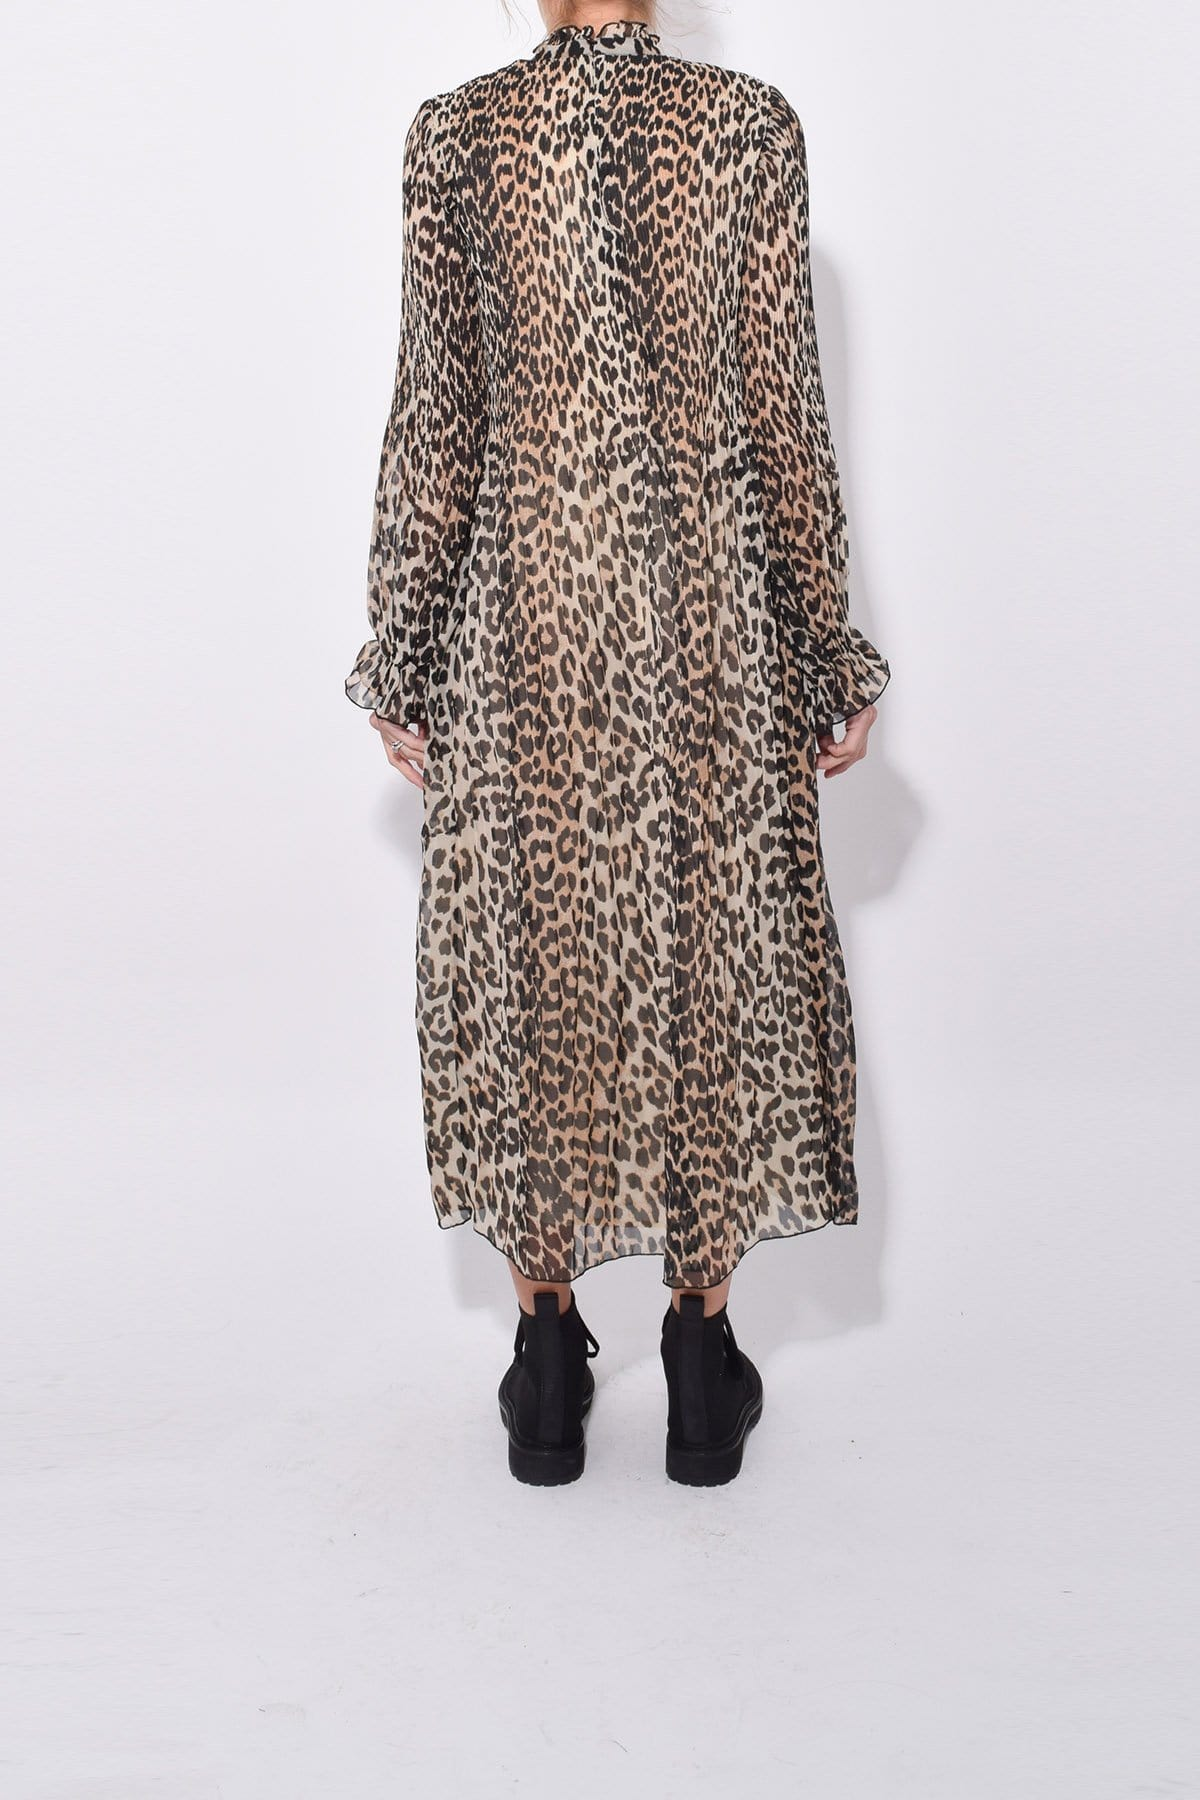 High-Neck Animal Leopard Print Sheer Gathered Pleated Georgette Maxi Dress/Midi Dress With Ruffles